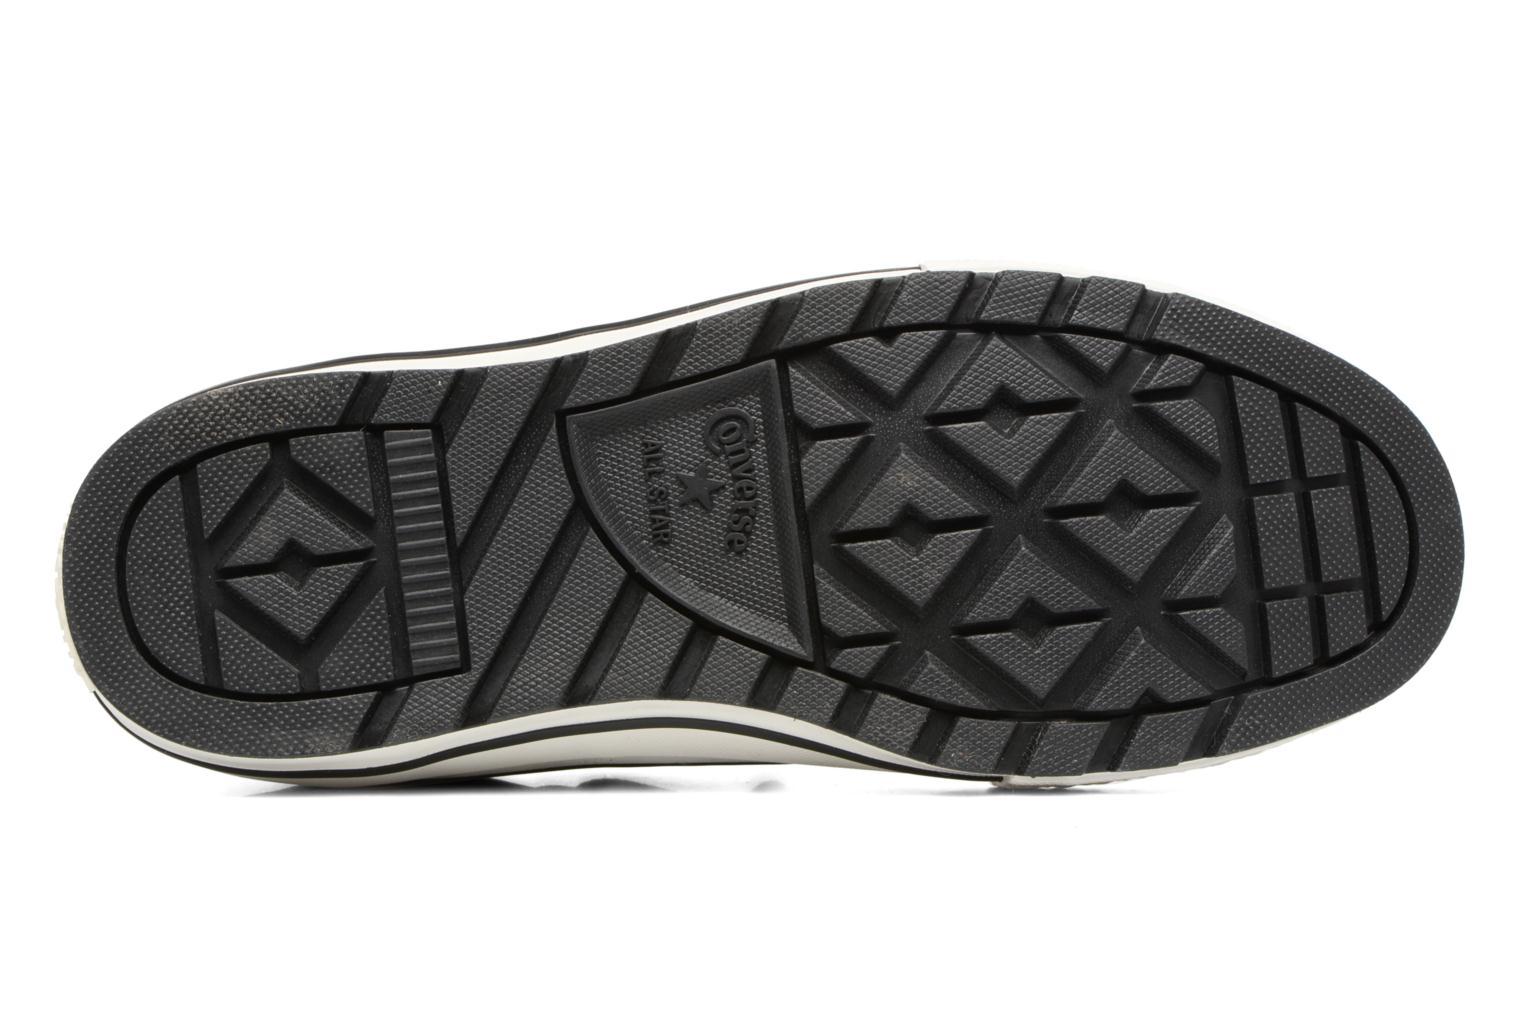 Chuck Taylor All Star Descent Quilted Leather Ox W Black/Egret/Black